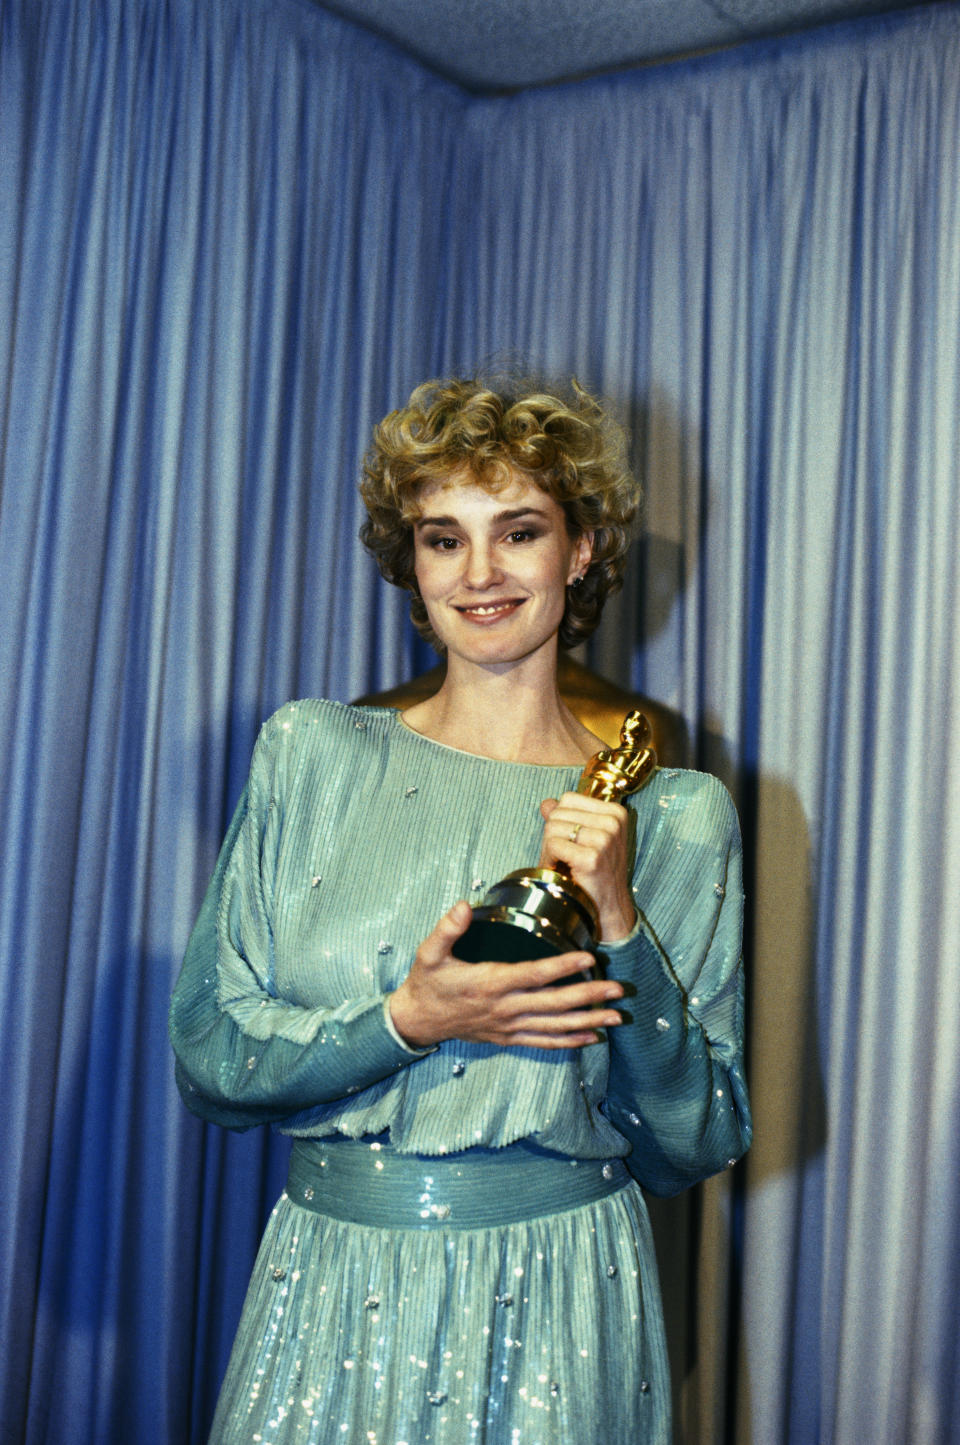 (Original Caption) Hollywood, California: Actress Jessica Lange stands backstage at the 1982 Academy Awards Ceremony holding the Oscar that she won for Best Actress in a Supporting Role for her role in Tootsie.